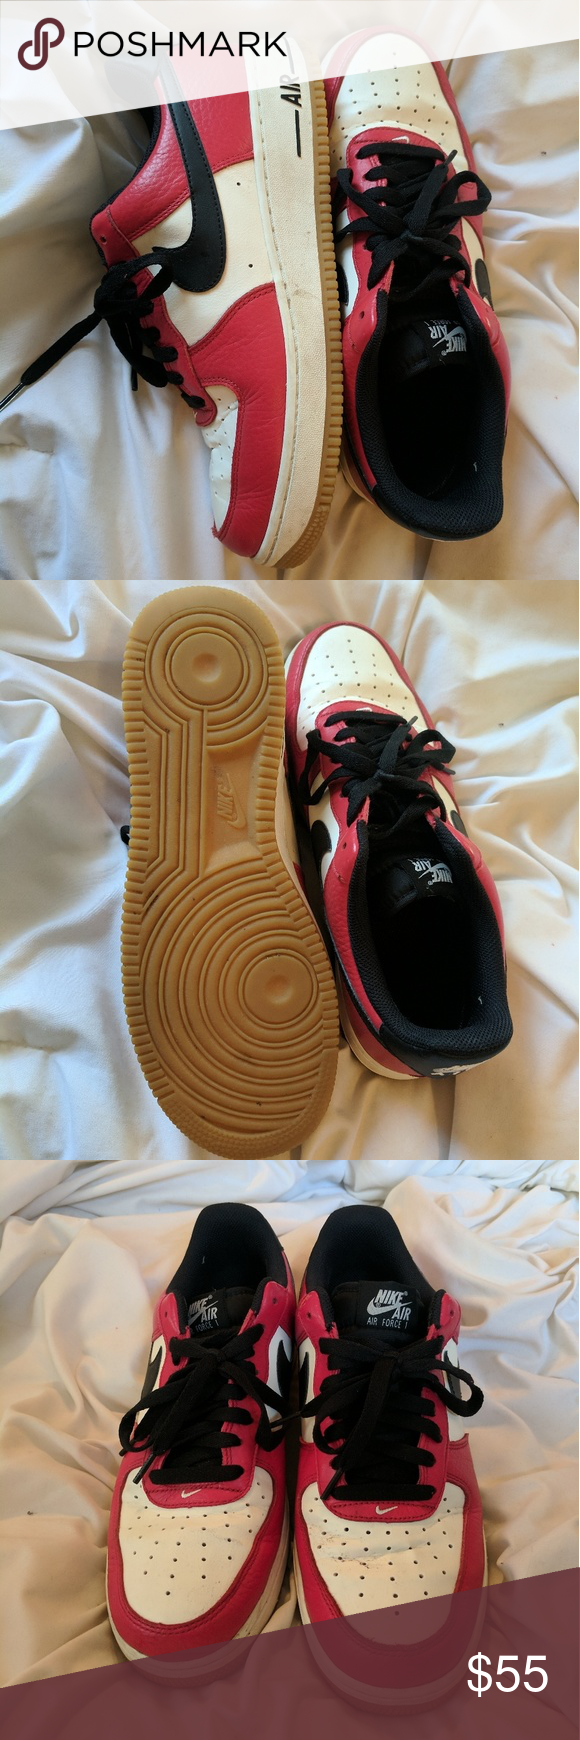 on sale c1a08 4bc86 Nike Air Force 1 Low Chicago Gum Sole Great condition, could be cleaned up  a bit. Men s 9.5, women s 11.5. Nike Shoes Sneakers